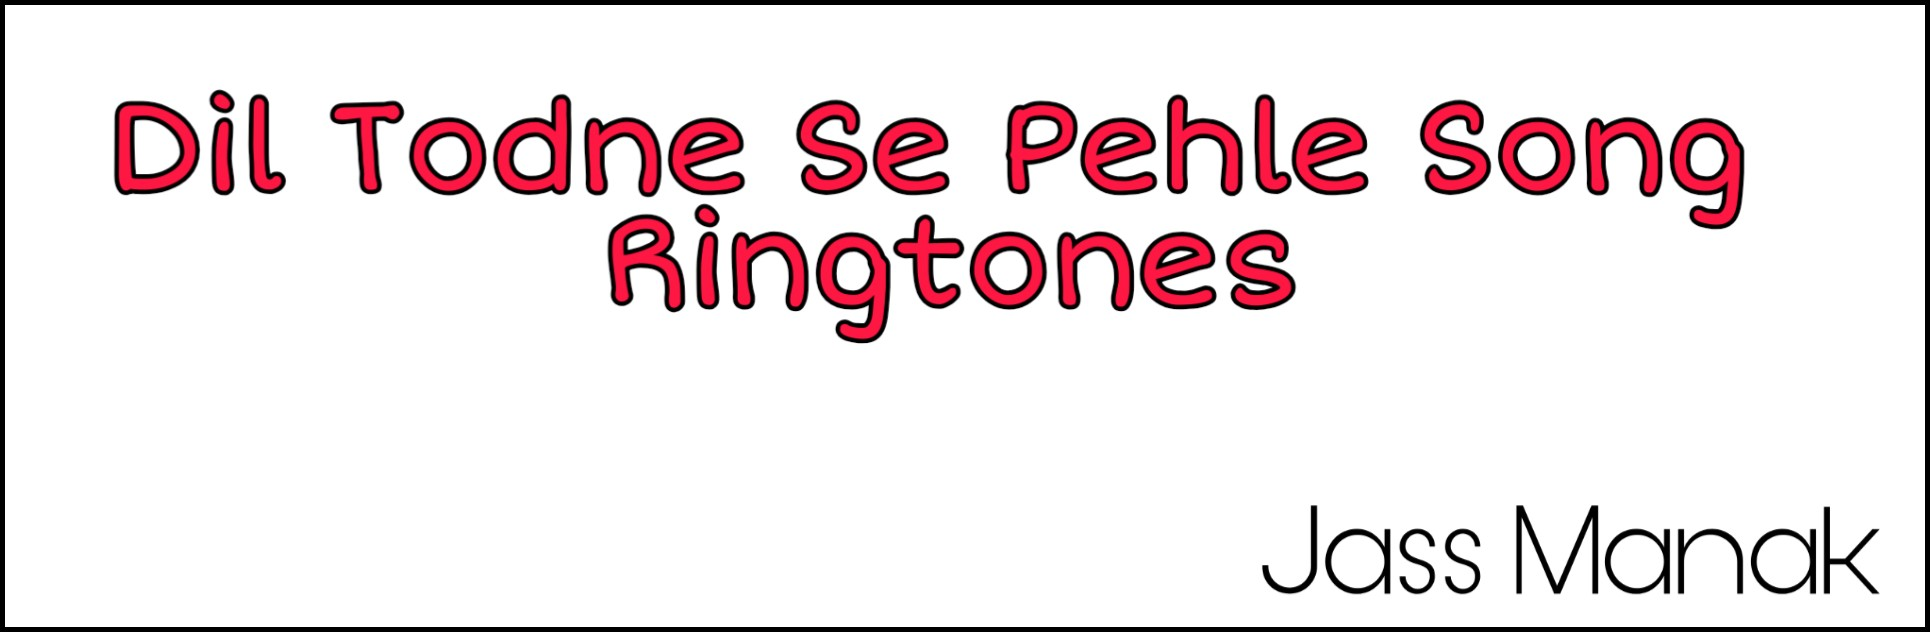 Mera Dil Todne Se Pehle Mp3 Ringtone Download